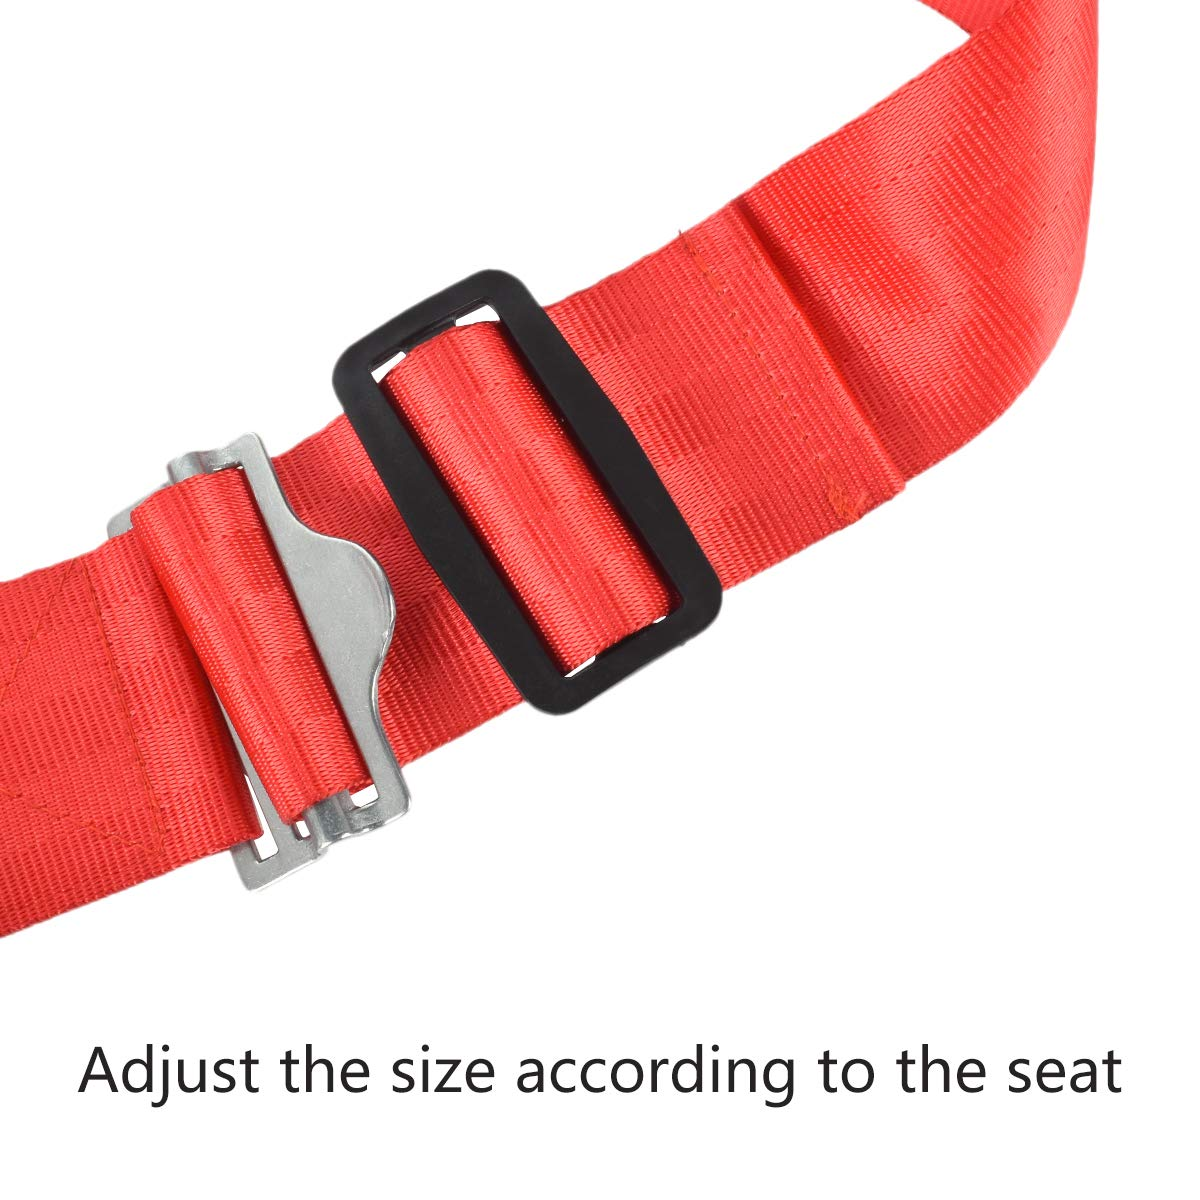 Ansblue Child Safety Harness Airplane Travel Clip Strap with Carry Pouch Bag.The Travel Harness Safety System Will Protect Your Child from Dangerous - 1pcs by Ansblue (Image #4)